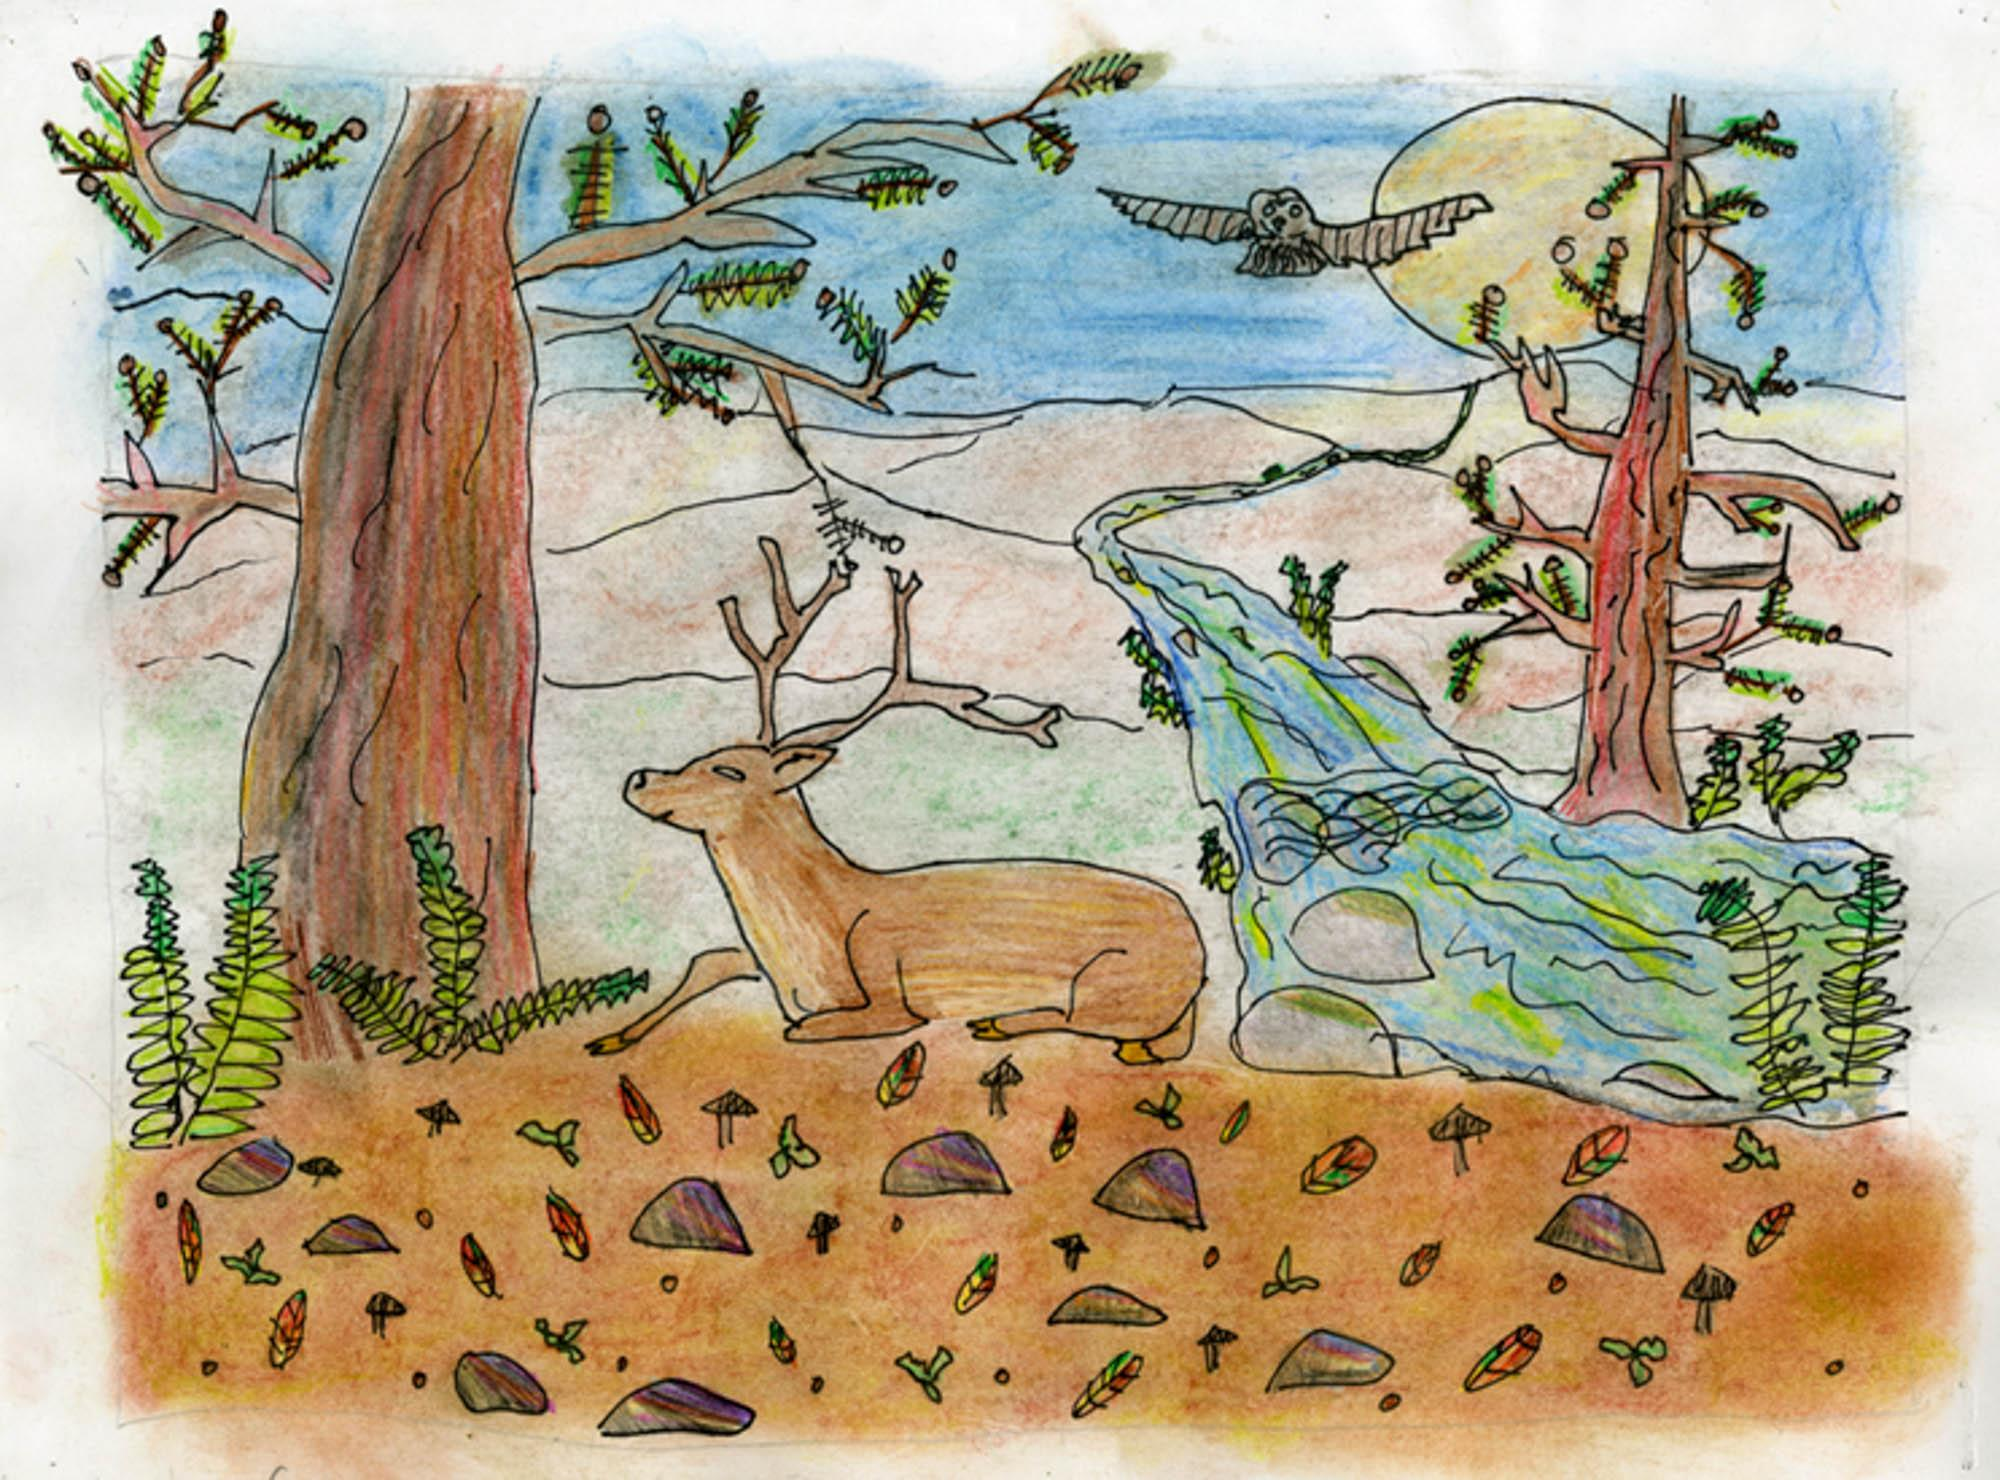 Resting Deer, Leslie Garcia, age 8 Watsonville, California Linscott Charter School Teacher: Linda Cover, 2013 River of Words Finalist